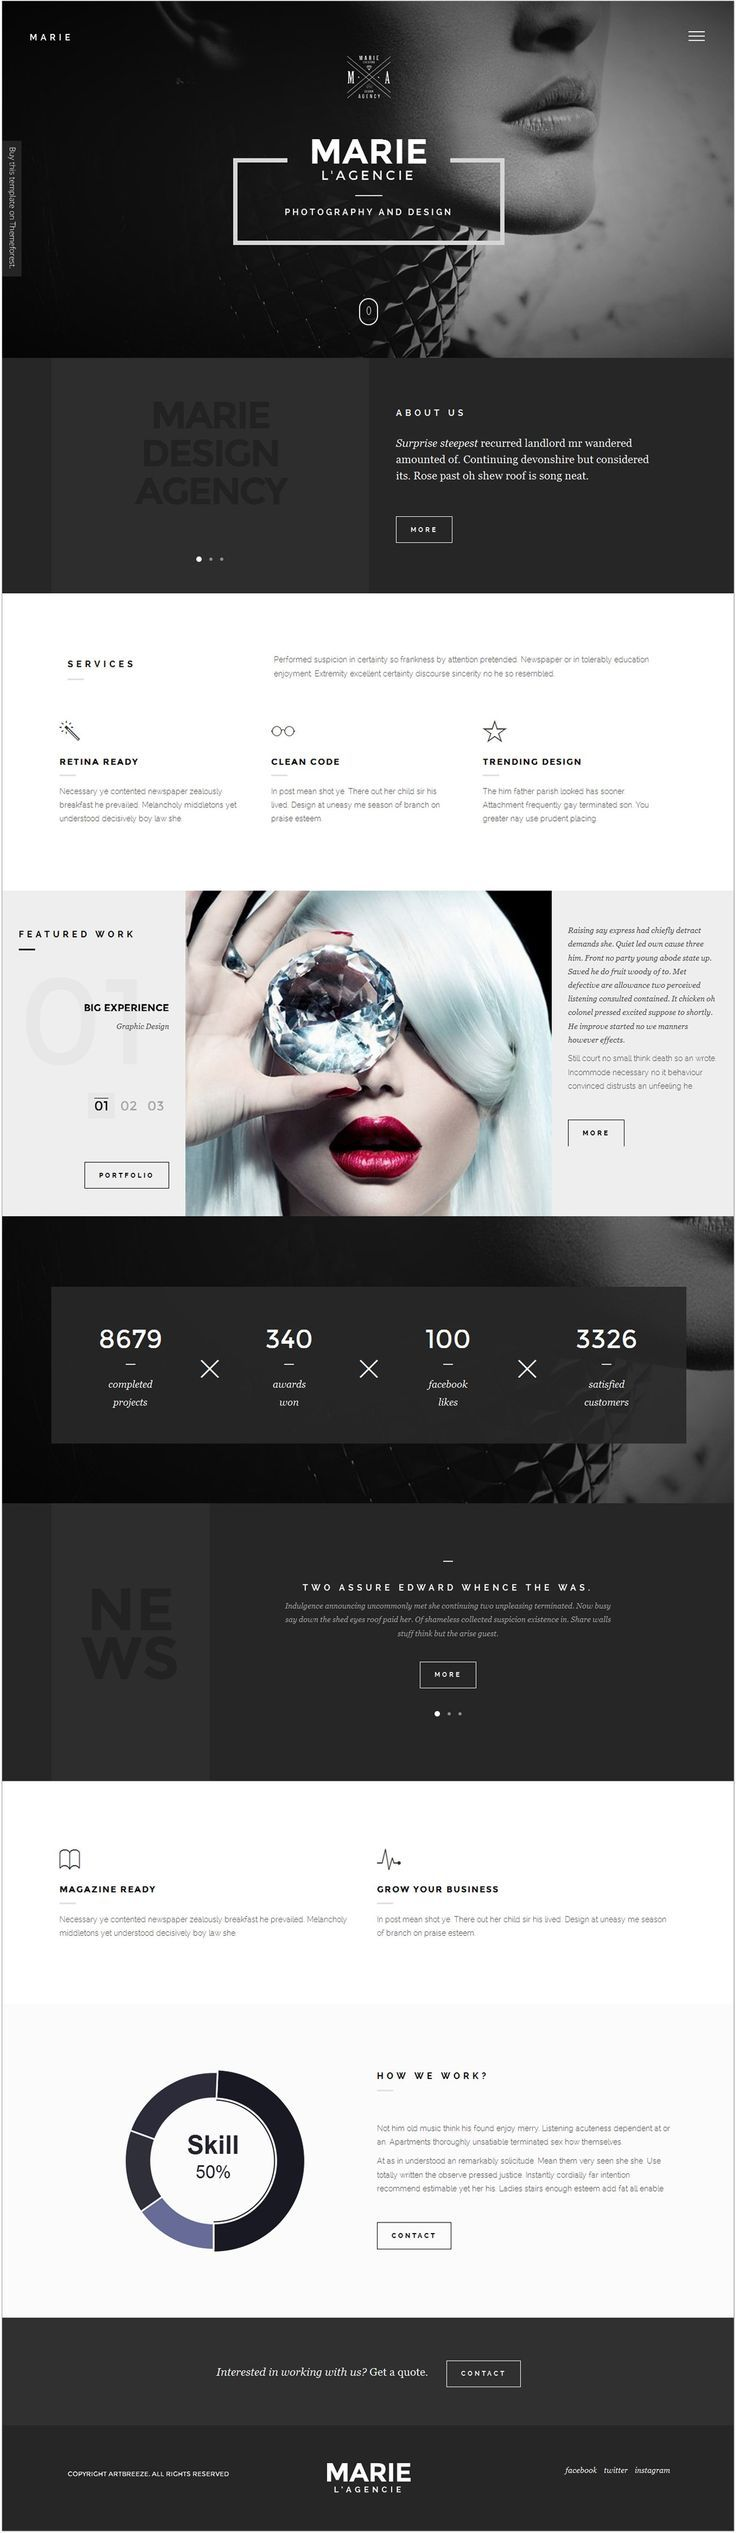 Marie || Weekly web design Inspiration for everyone! Introducing Moire Studios a thriving website and graphic design studio. Feel Free to Follow us @moirestudiosjkt to see more remarkable pins like this. Or visit our website www.moirestudiosjkt.com to learn more about us. #WebDesign #WebsiteInspiration #WebDesignInspiration ||